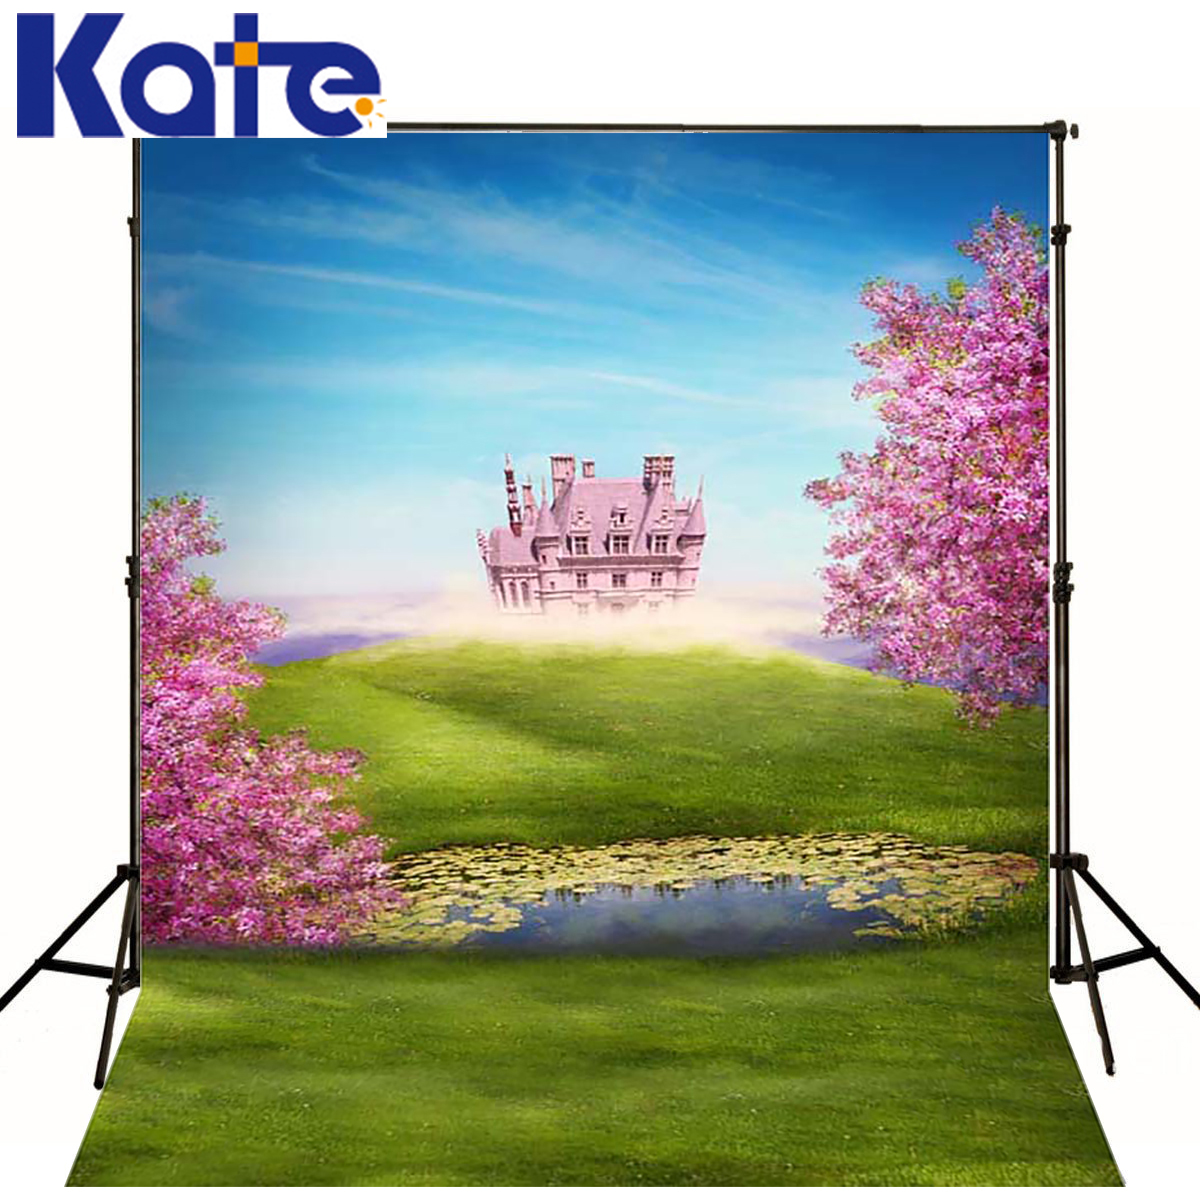 Kate Fairy Tale Castle Photography Background Spring Scenery Forest Wedding Backdrops for Children Photo Shoot vinyl photography background fairy tale